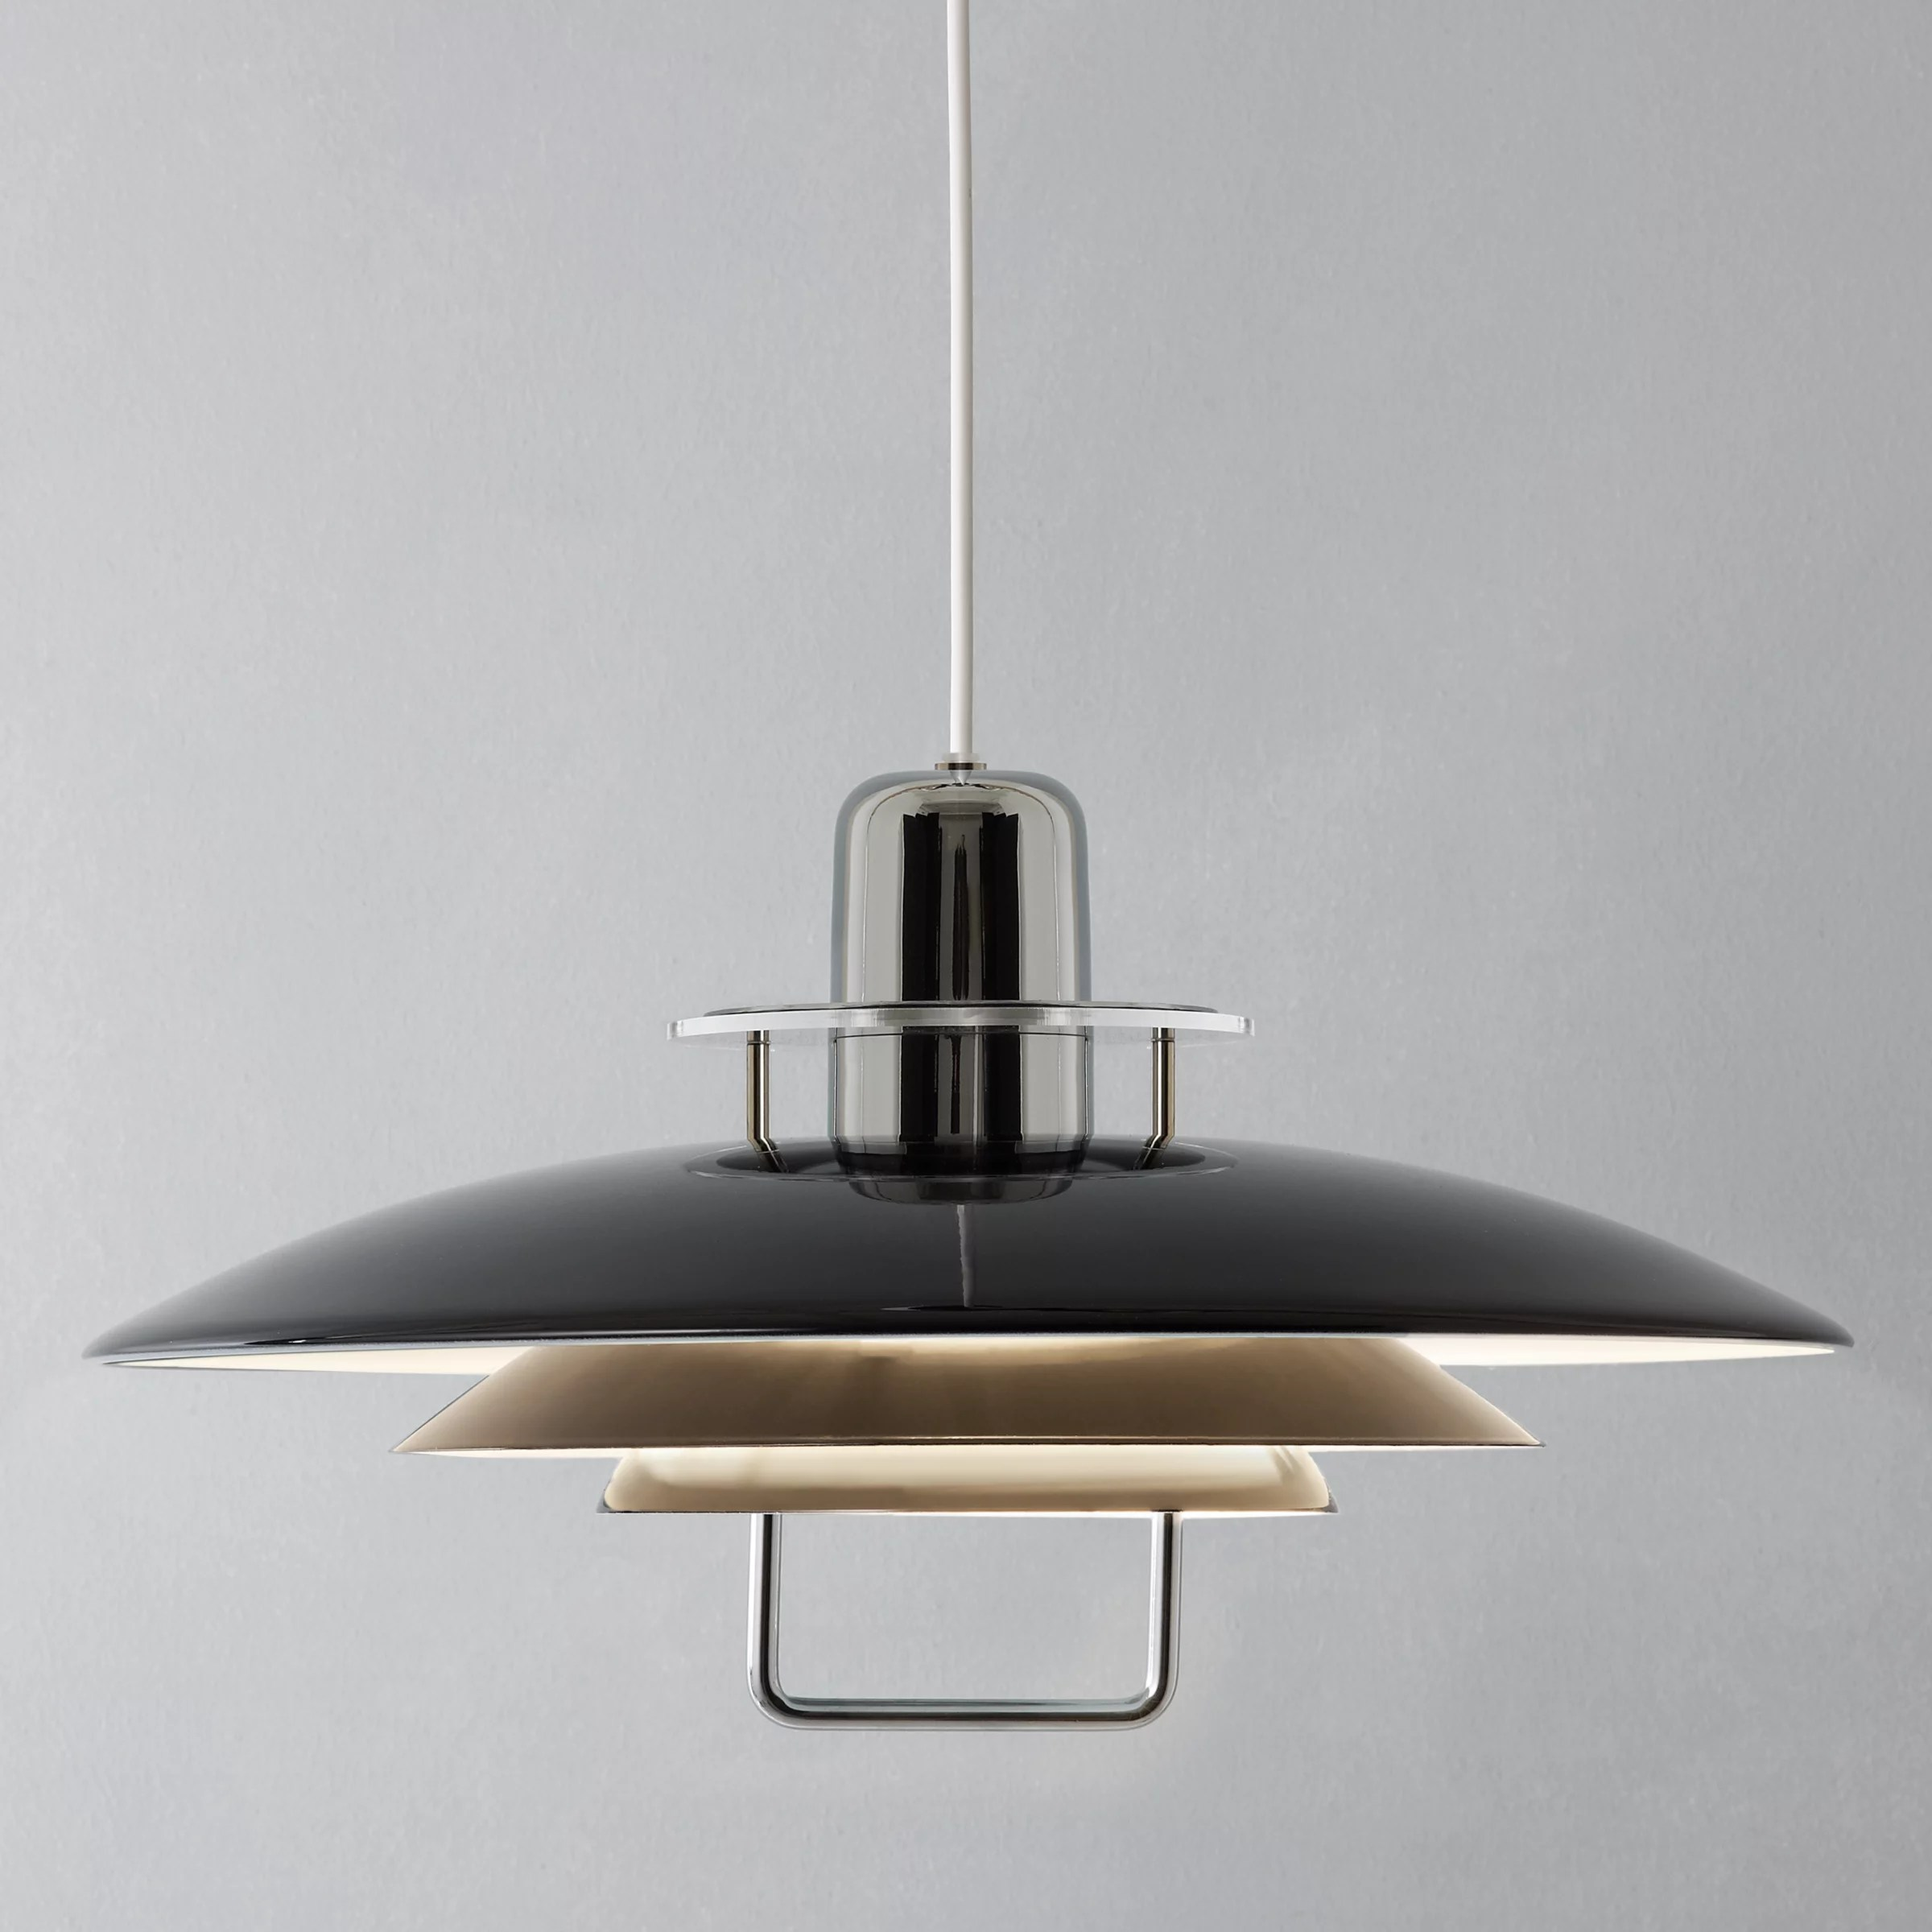 Belid Felix Rise And Fall Ceiling Light At John Lewis